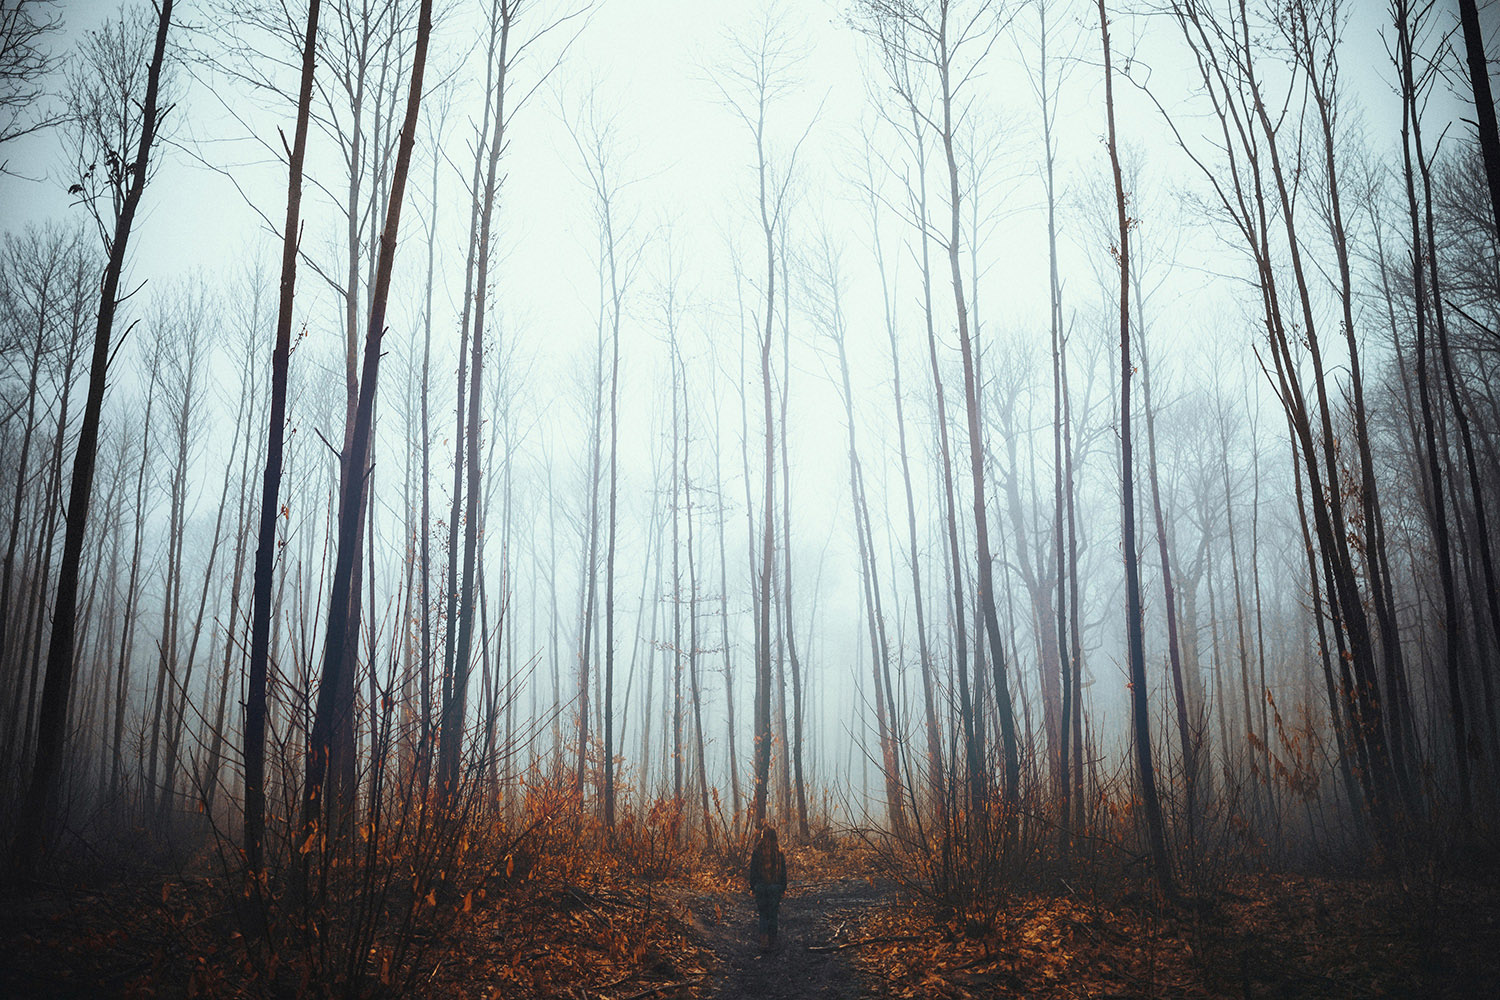 Raphaelle Monvoisin, Pathway to Winter, Autumn forest